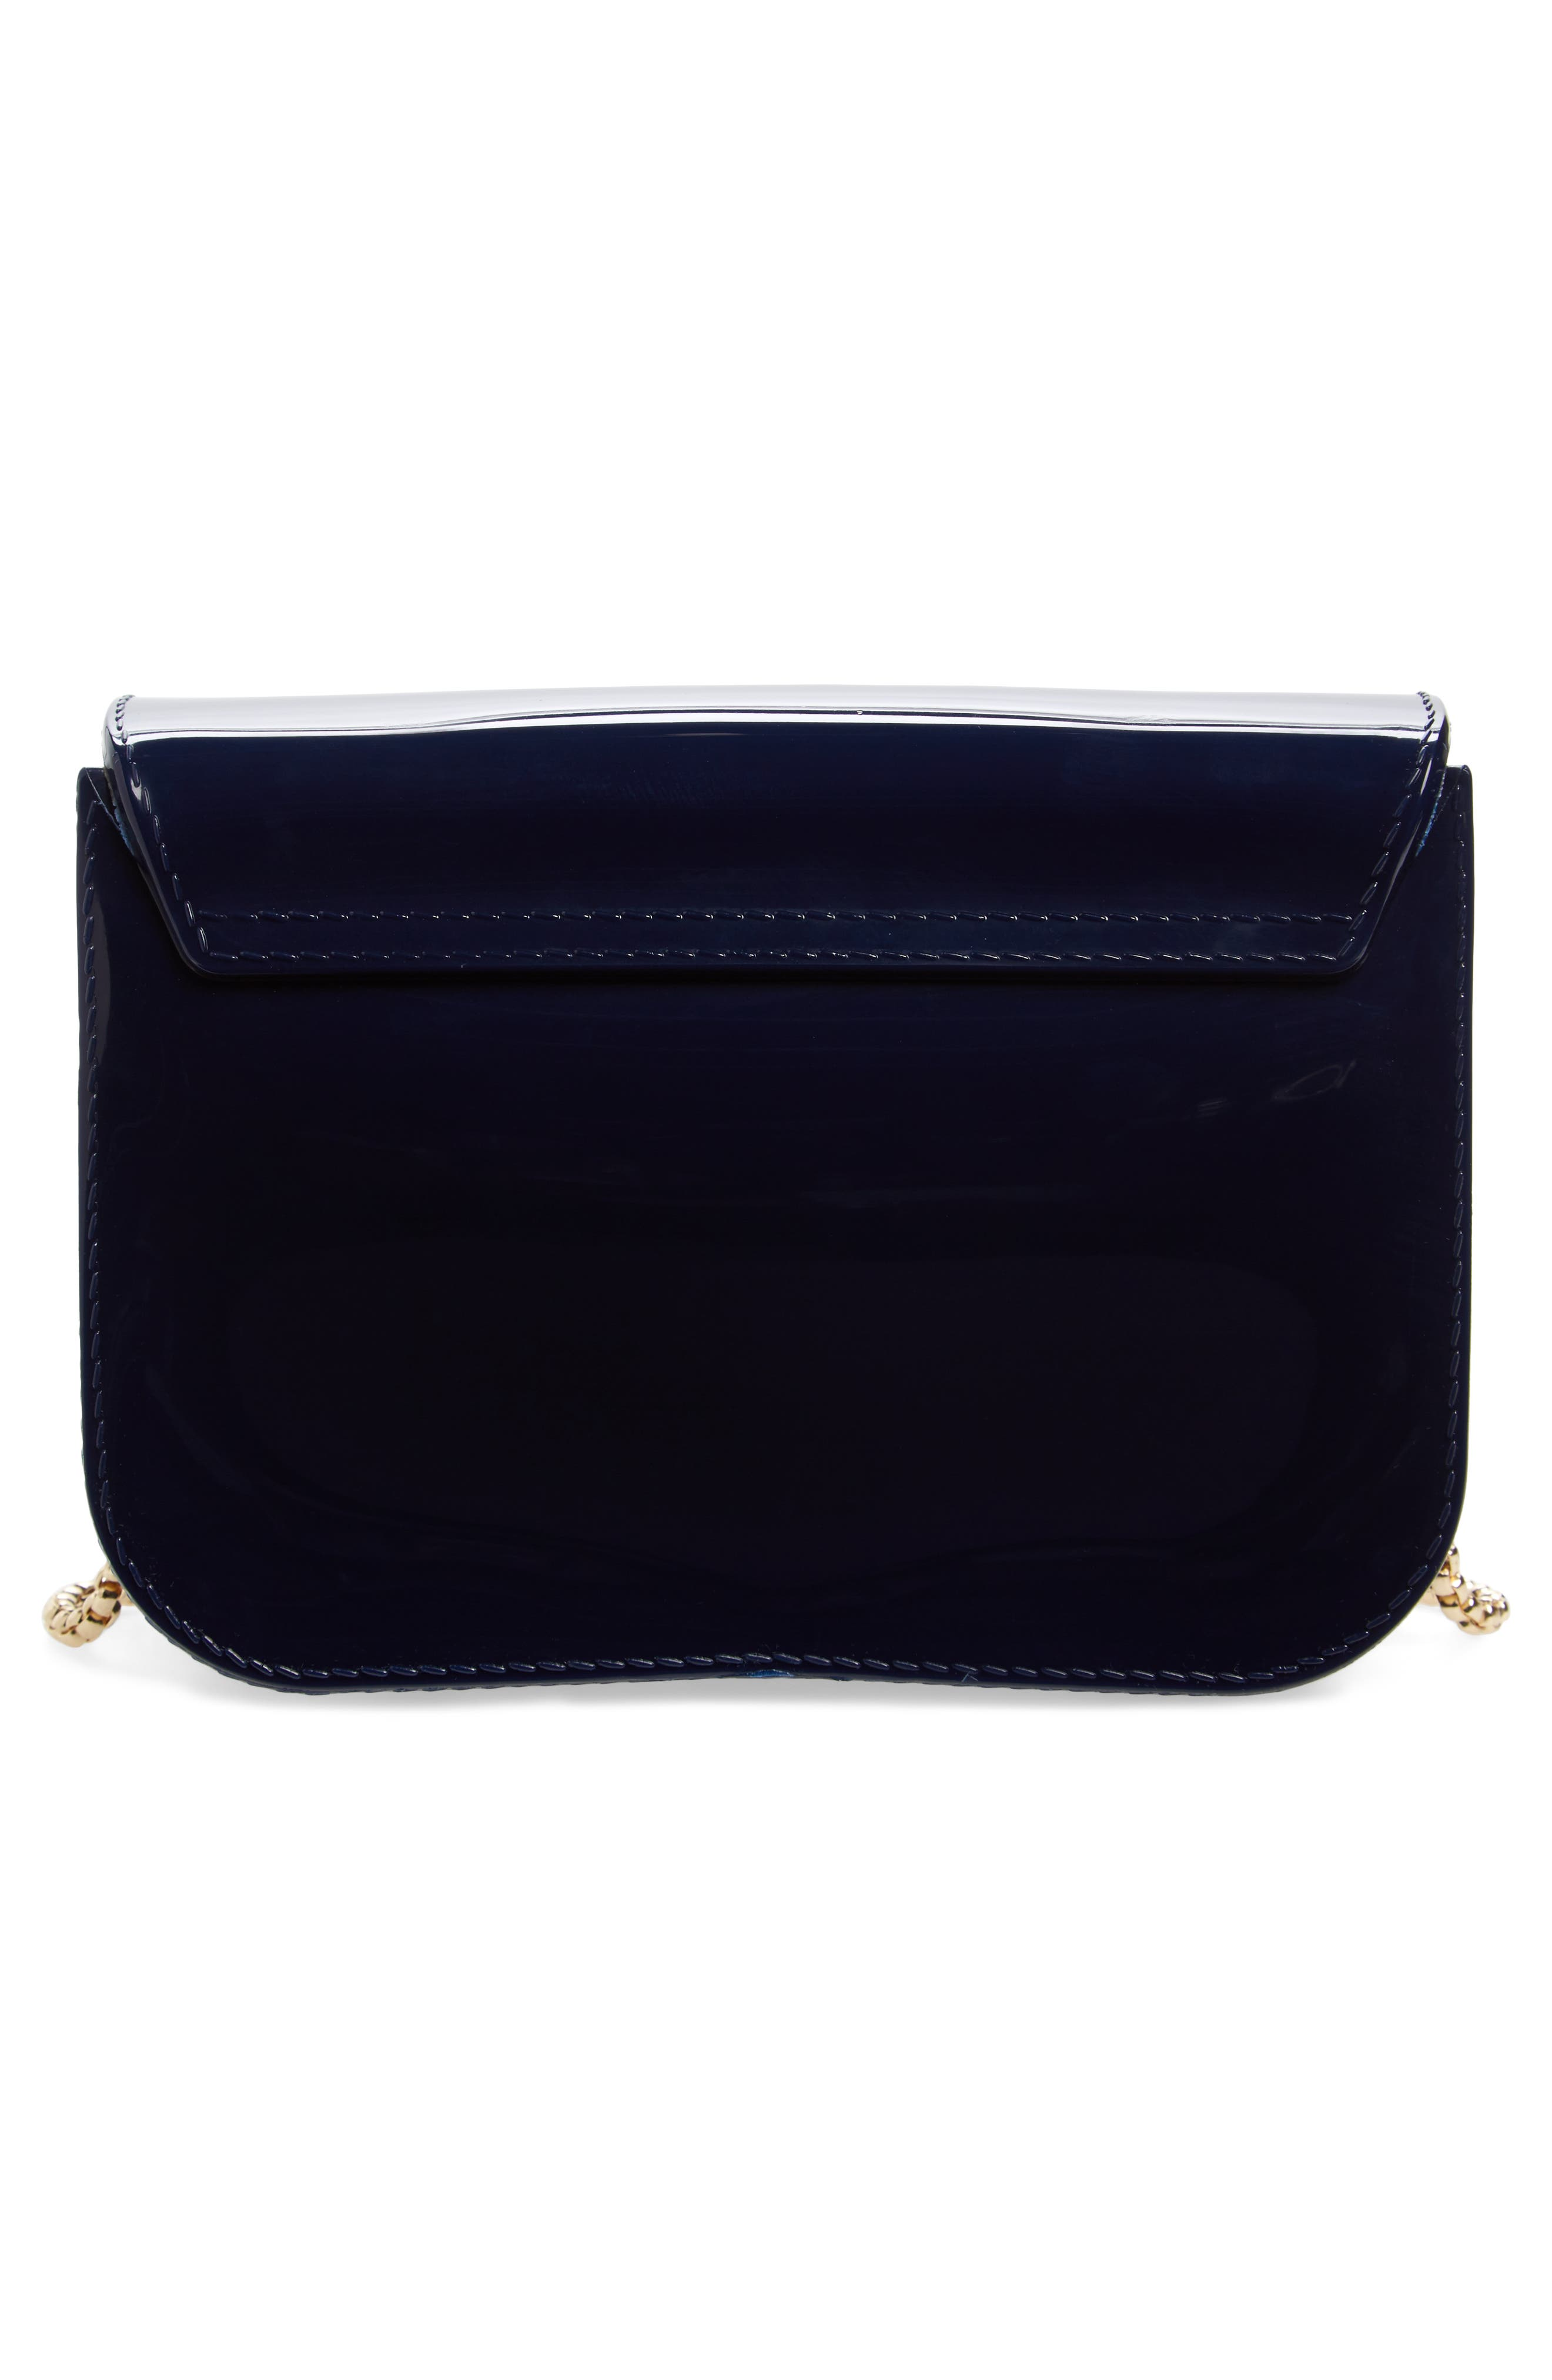 Jelly Shoulder Bag,                             Alternate thumbnail 2, color,                             Navy